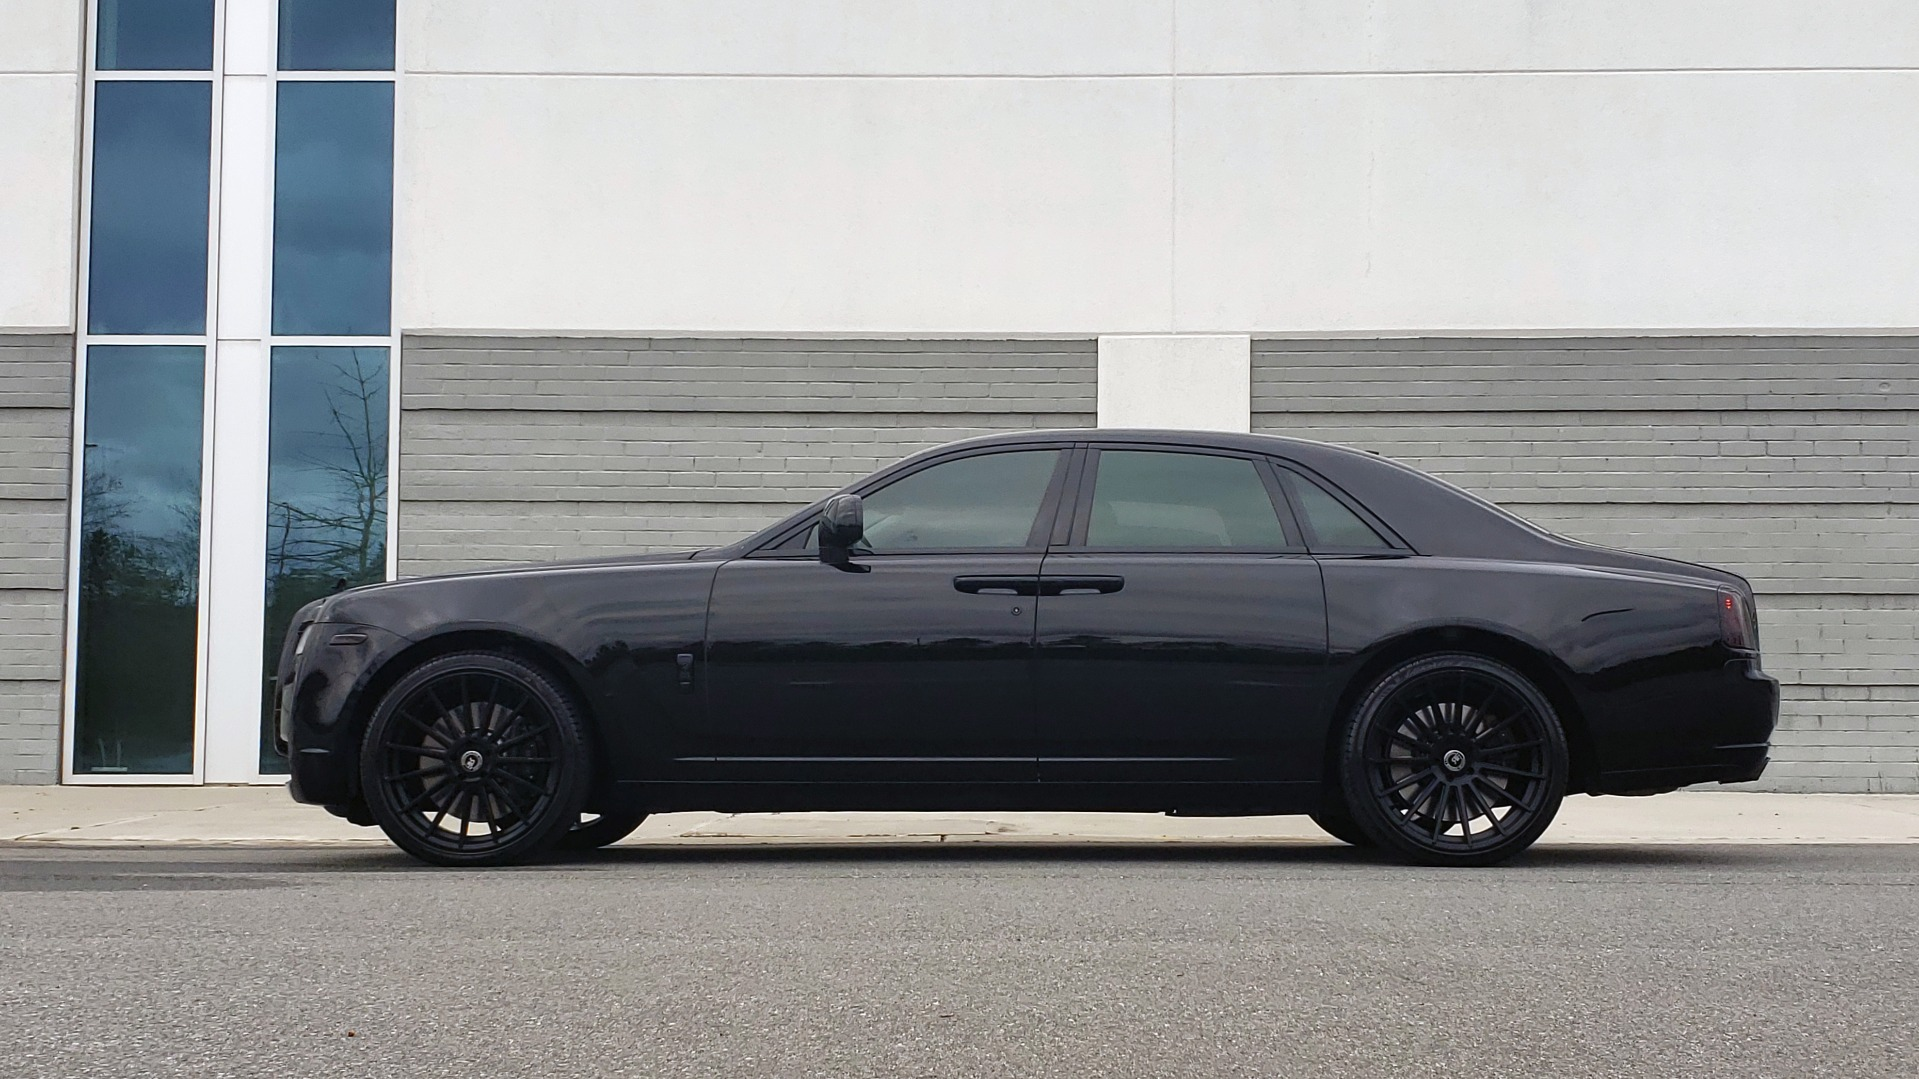 Used 2010 Rolls-Royce GHOST 6.6L TURBO V12 (563HP) / NAV / SUNROOF / SUICIDE DOORS for sale $89,000 at Formula Imports in Charlotte NC 28227 5